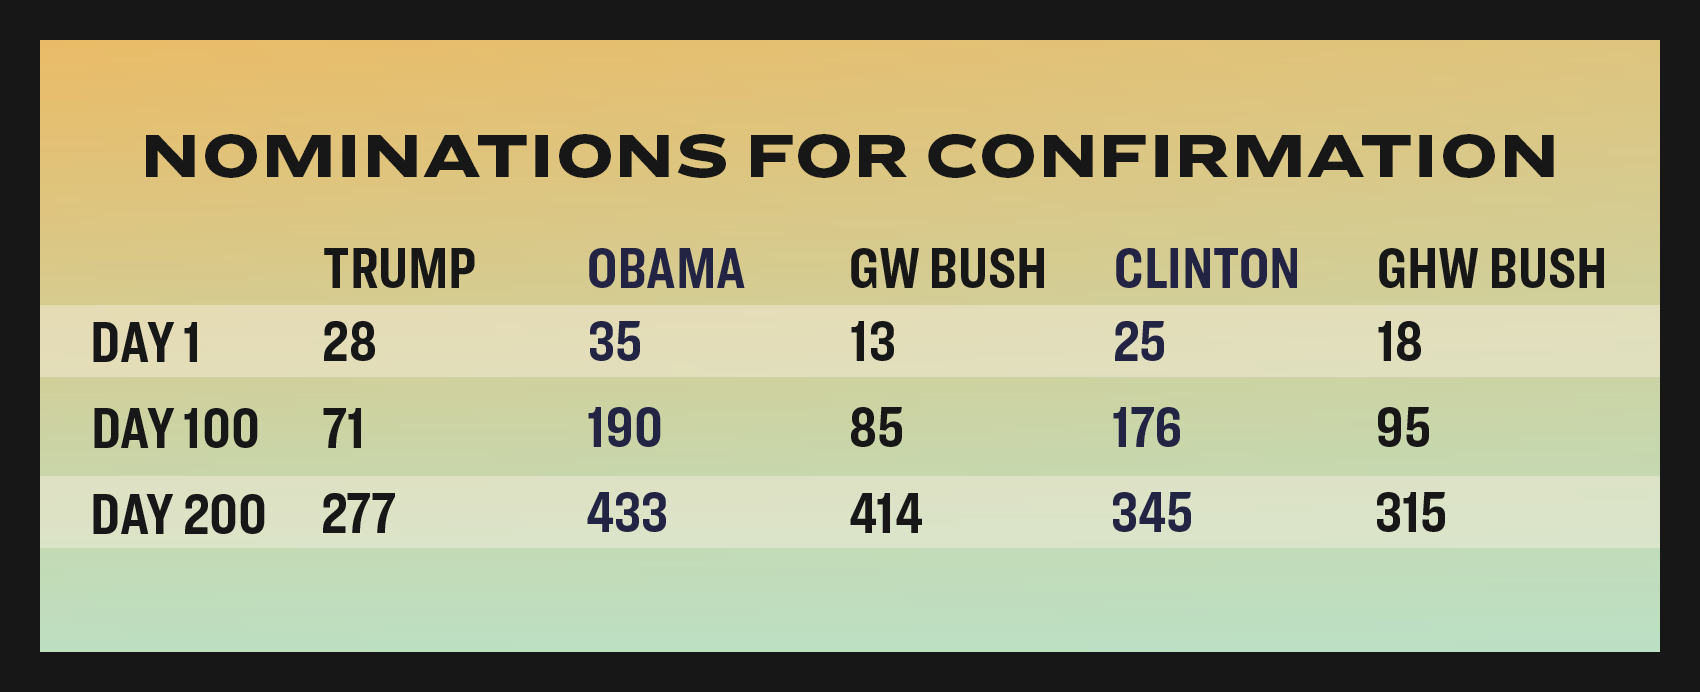 how many nominations for confirmation Trump, Obama, GW Bush, Clinton, and GHW Bush on their 1st, 100th, and 200th day in office.